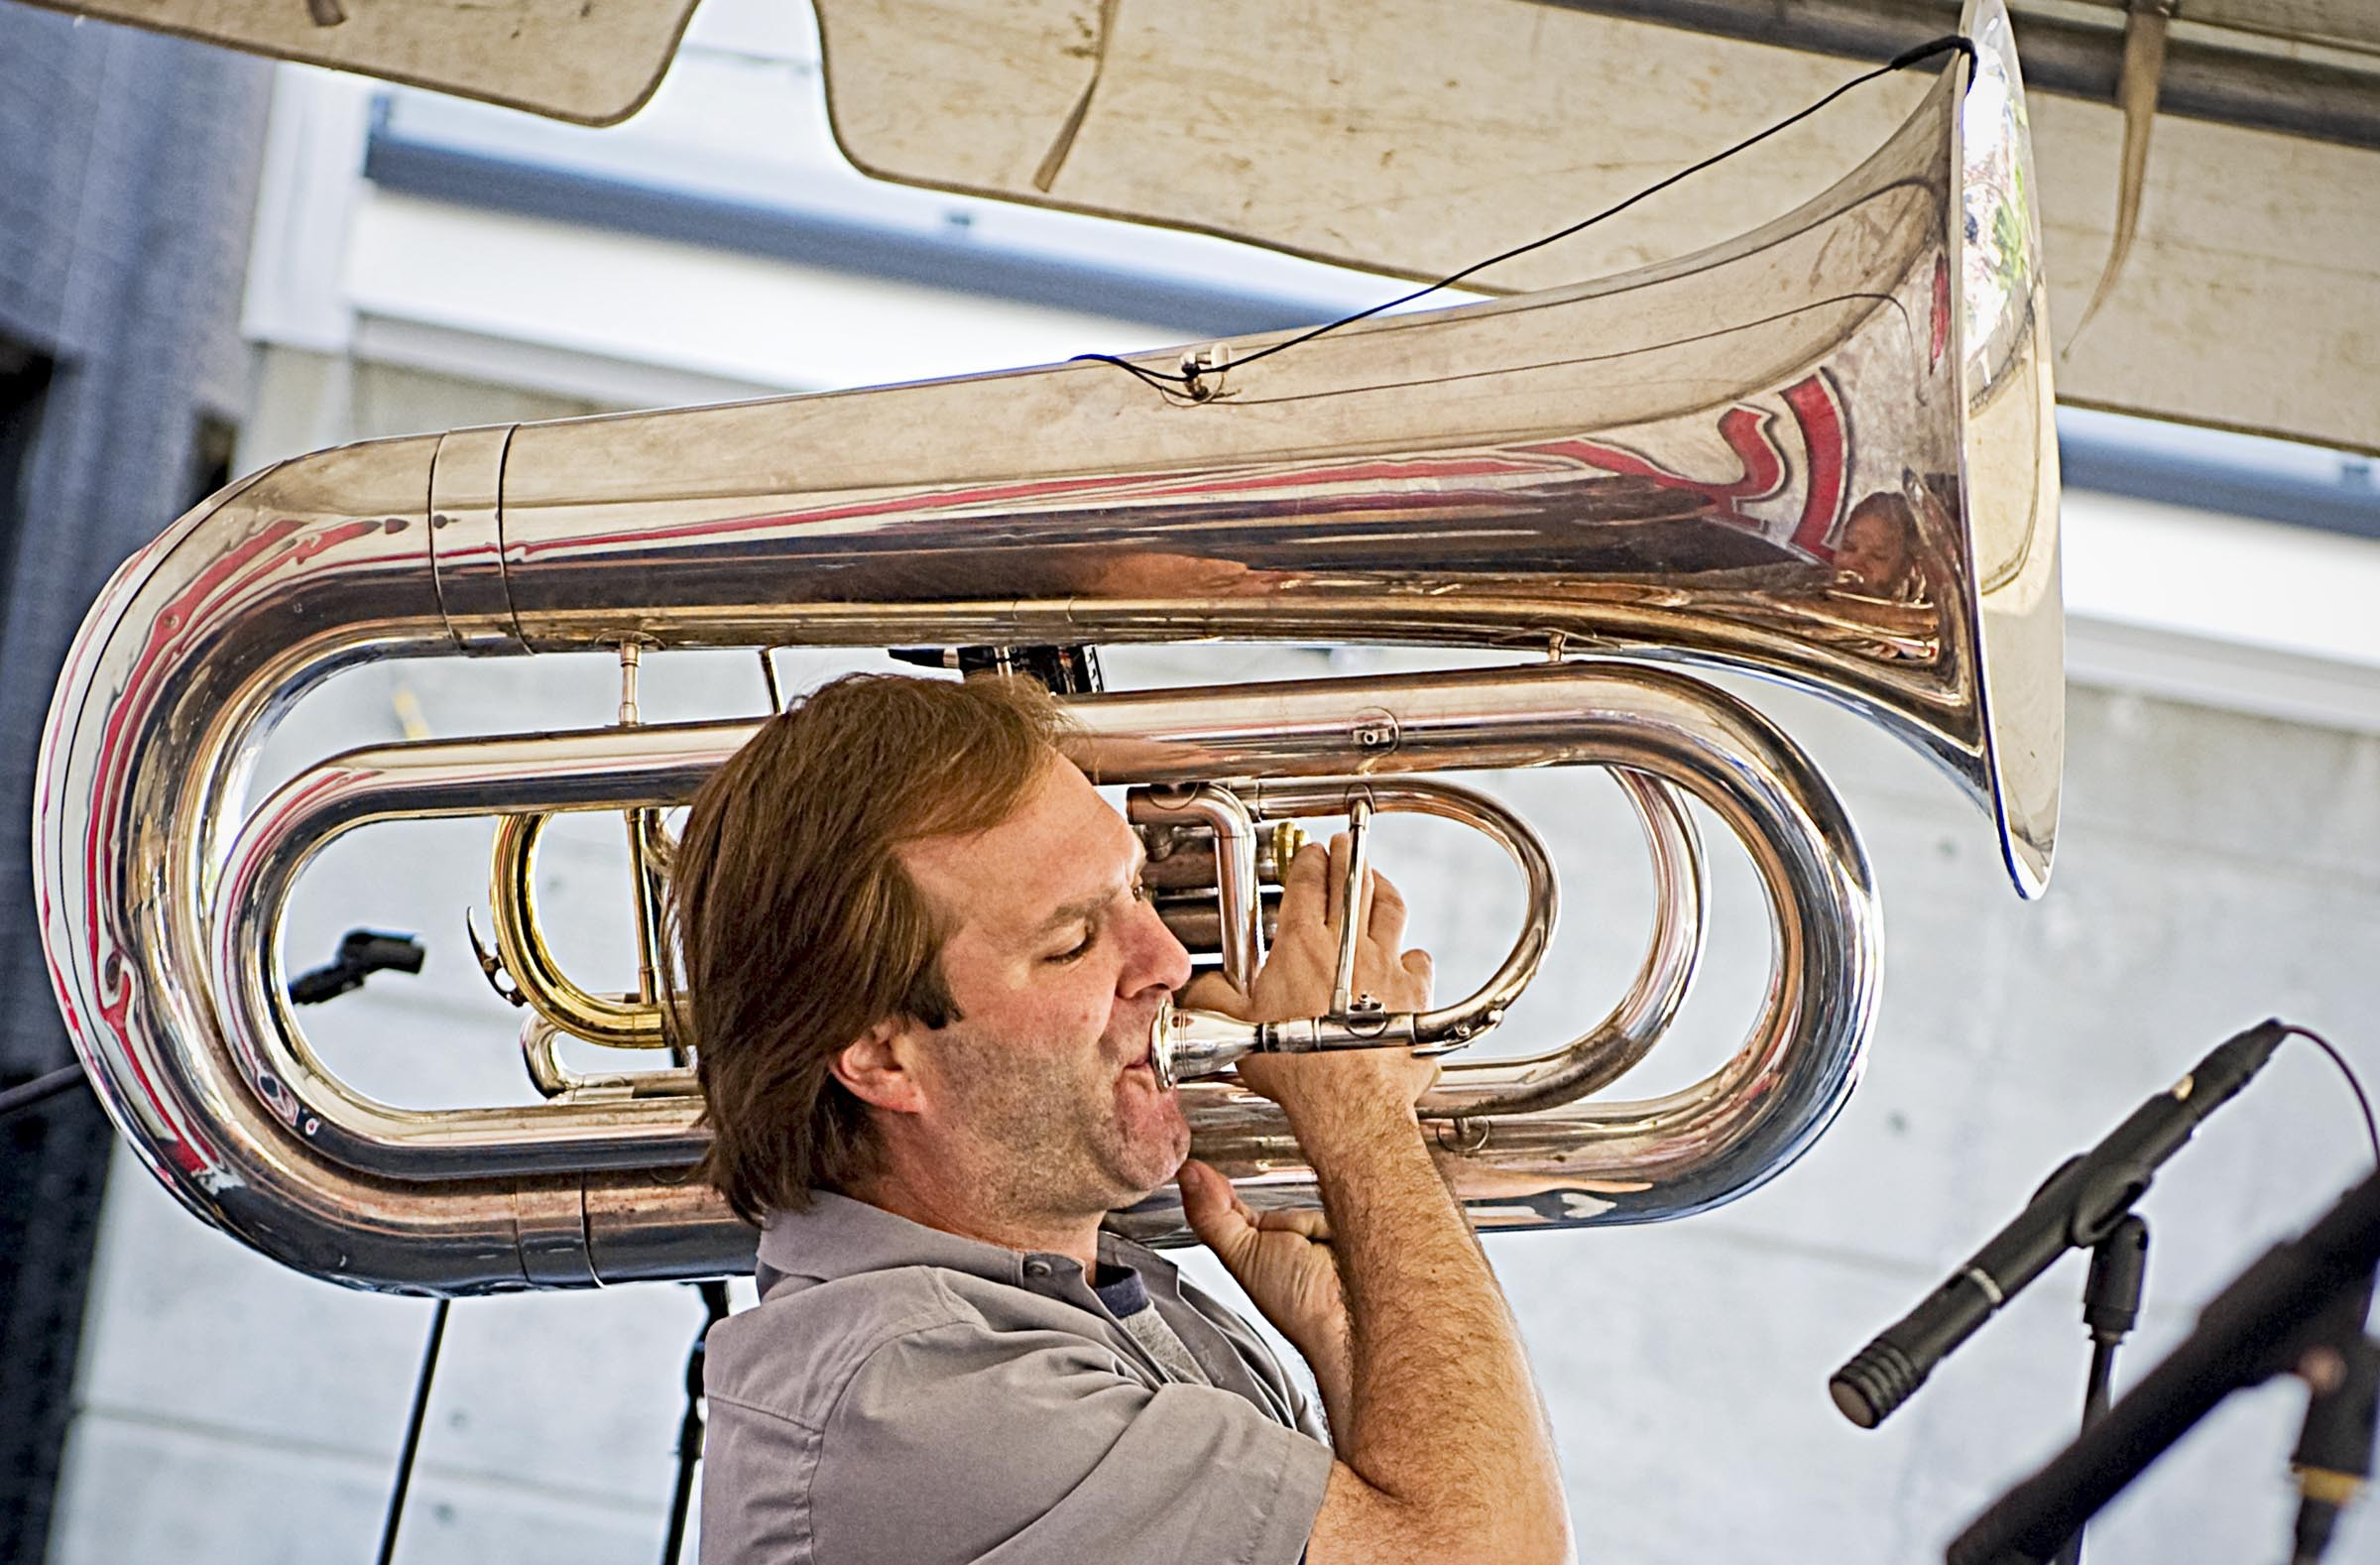 """Technically, No BS member Stefan Demetriadis plays the sousaphone, but most people simply know it as the tuba. Trumpeter and saxophonist Marcus Tenney refers to it as """"the rocket launcher."""" - ASH DANIEL"""